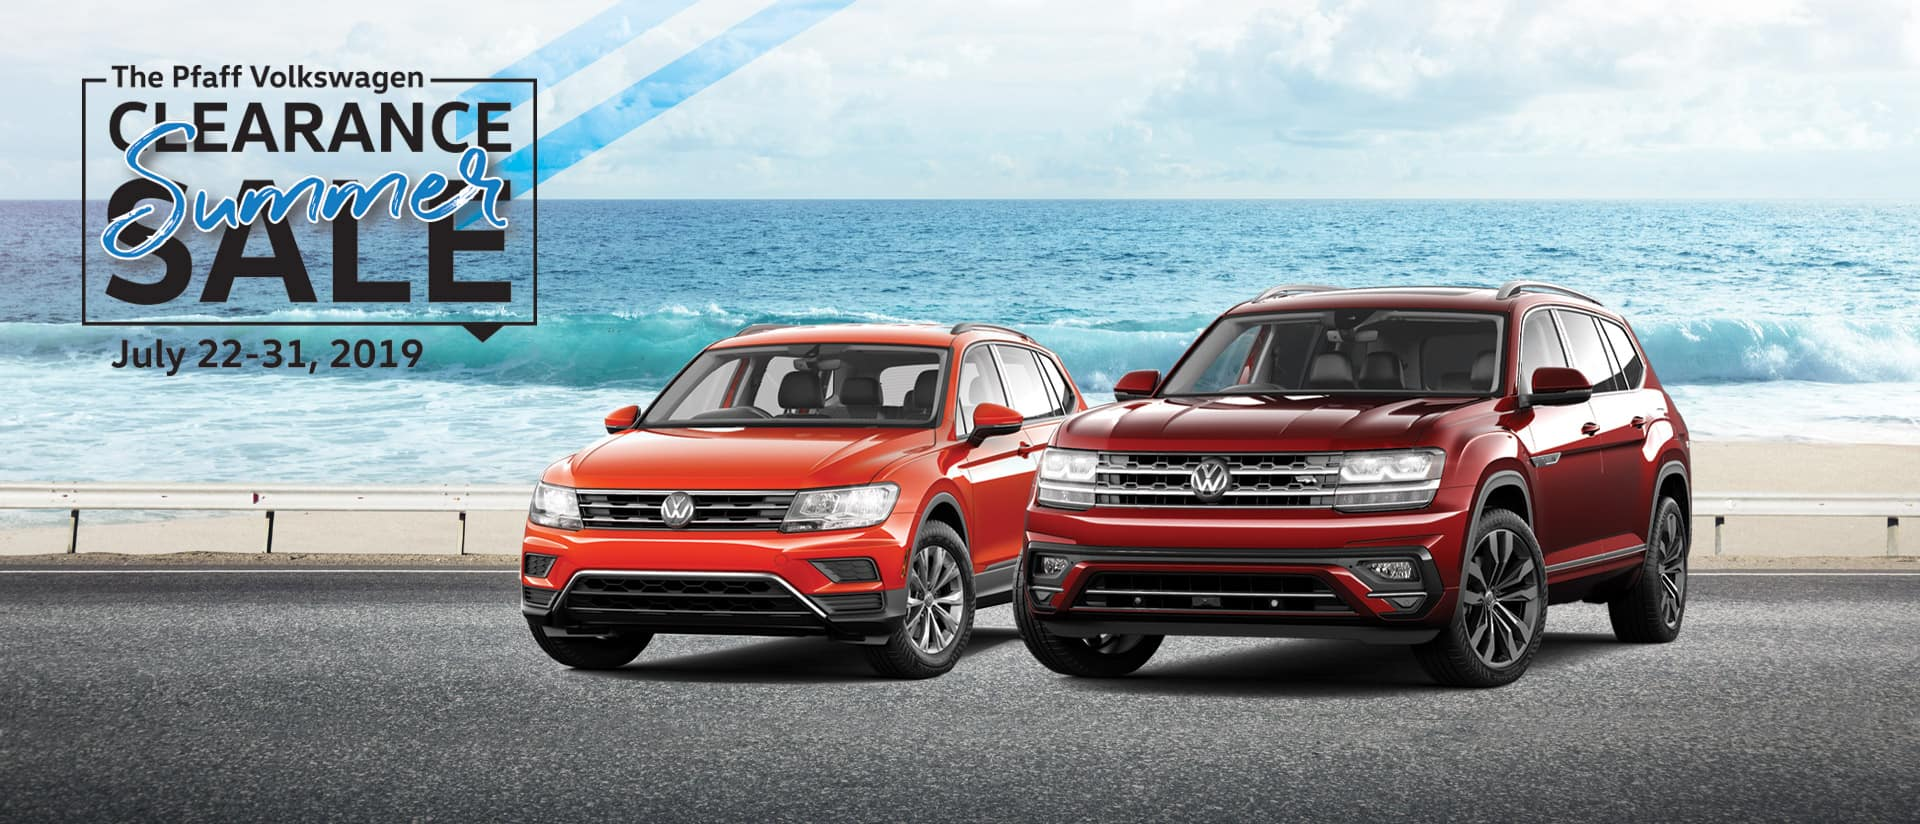 Pfaff Volkswagen Tiguan Atlas Jetta Clearance Sale Offer